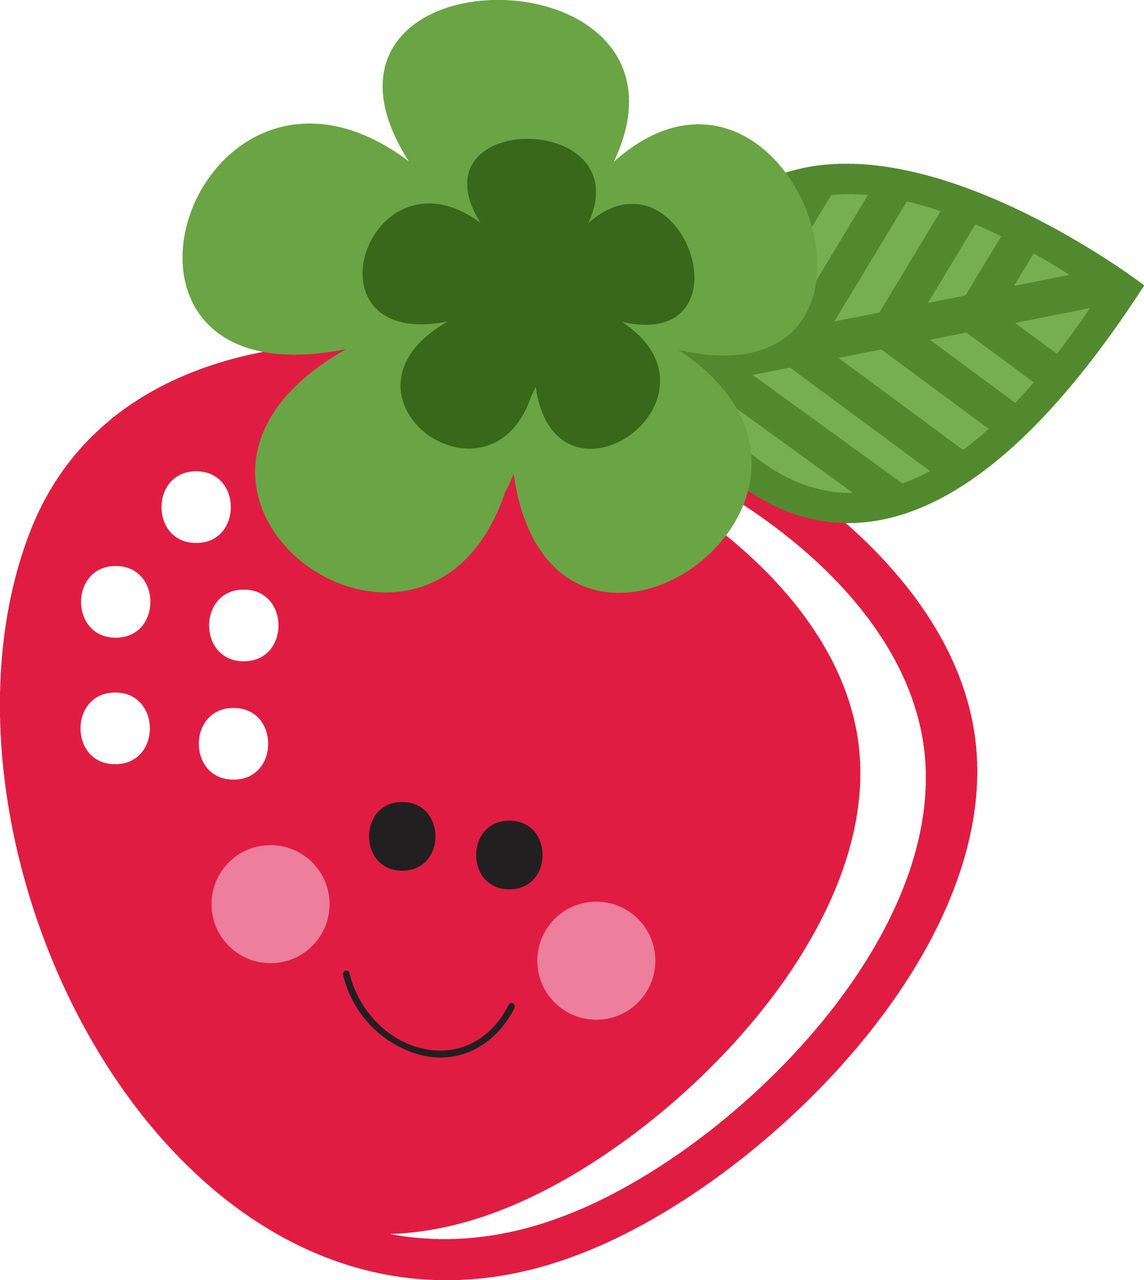 ppbn designs cute strawberry 0 50 http www ppbndesigns com rh pinterest ca strawberry clipart black and white strawberry clipart black and white